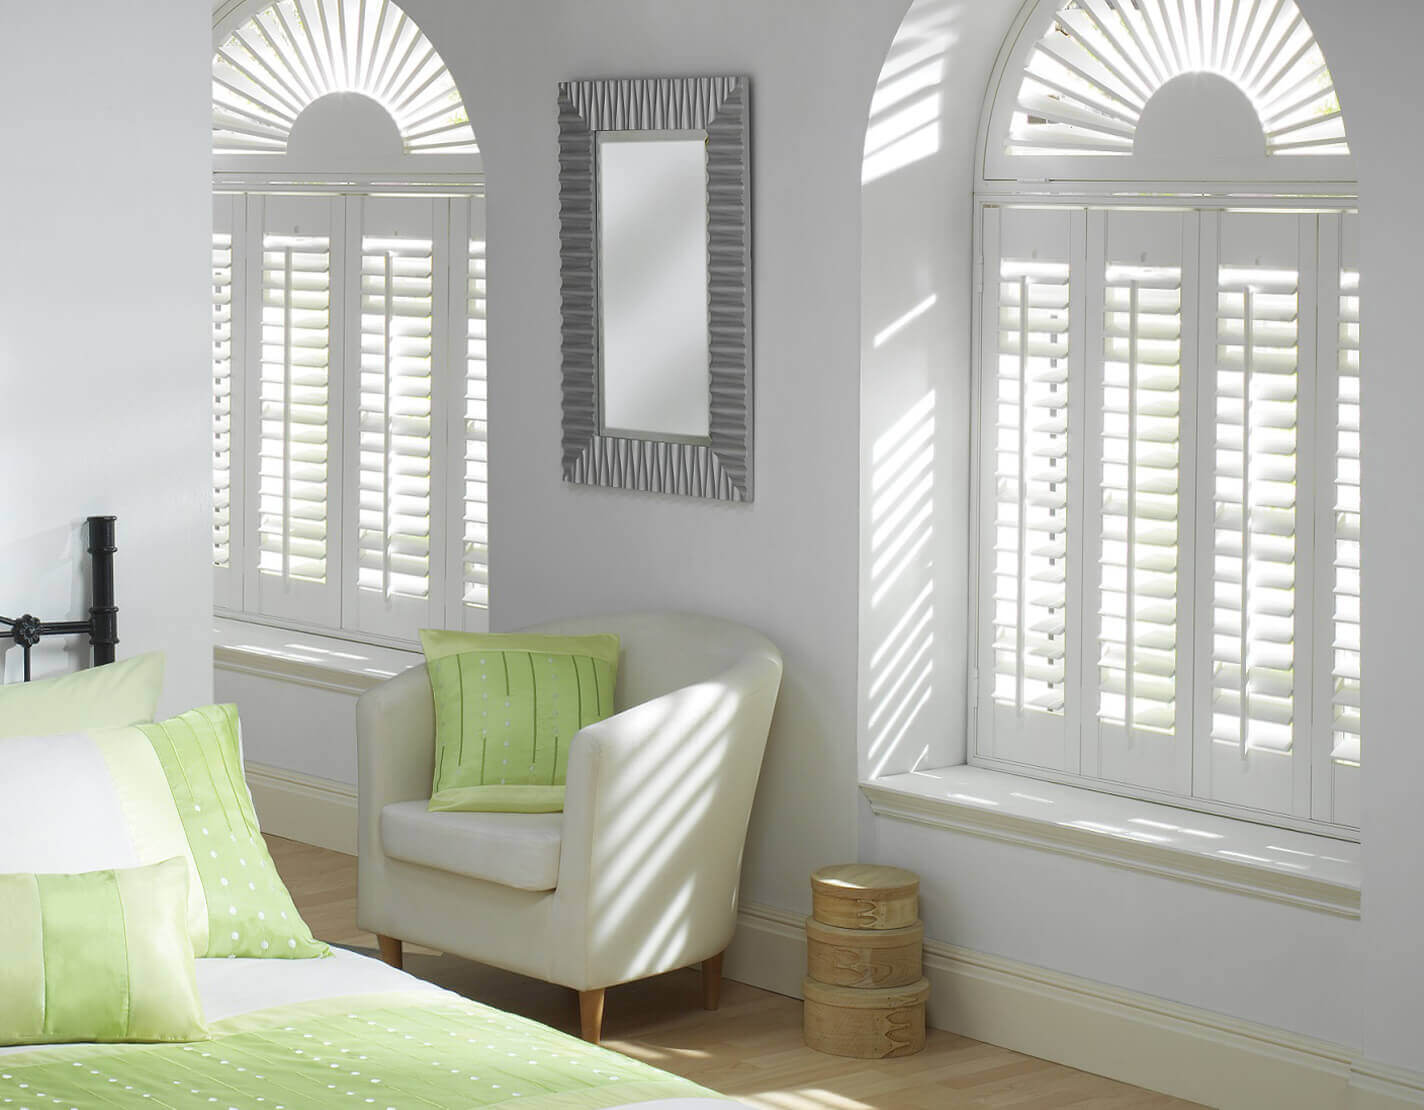 White wooden shutters angling sunlight in bedroom